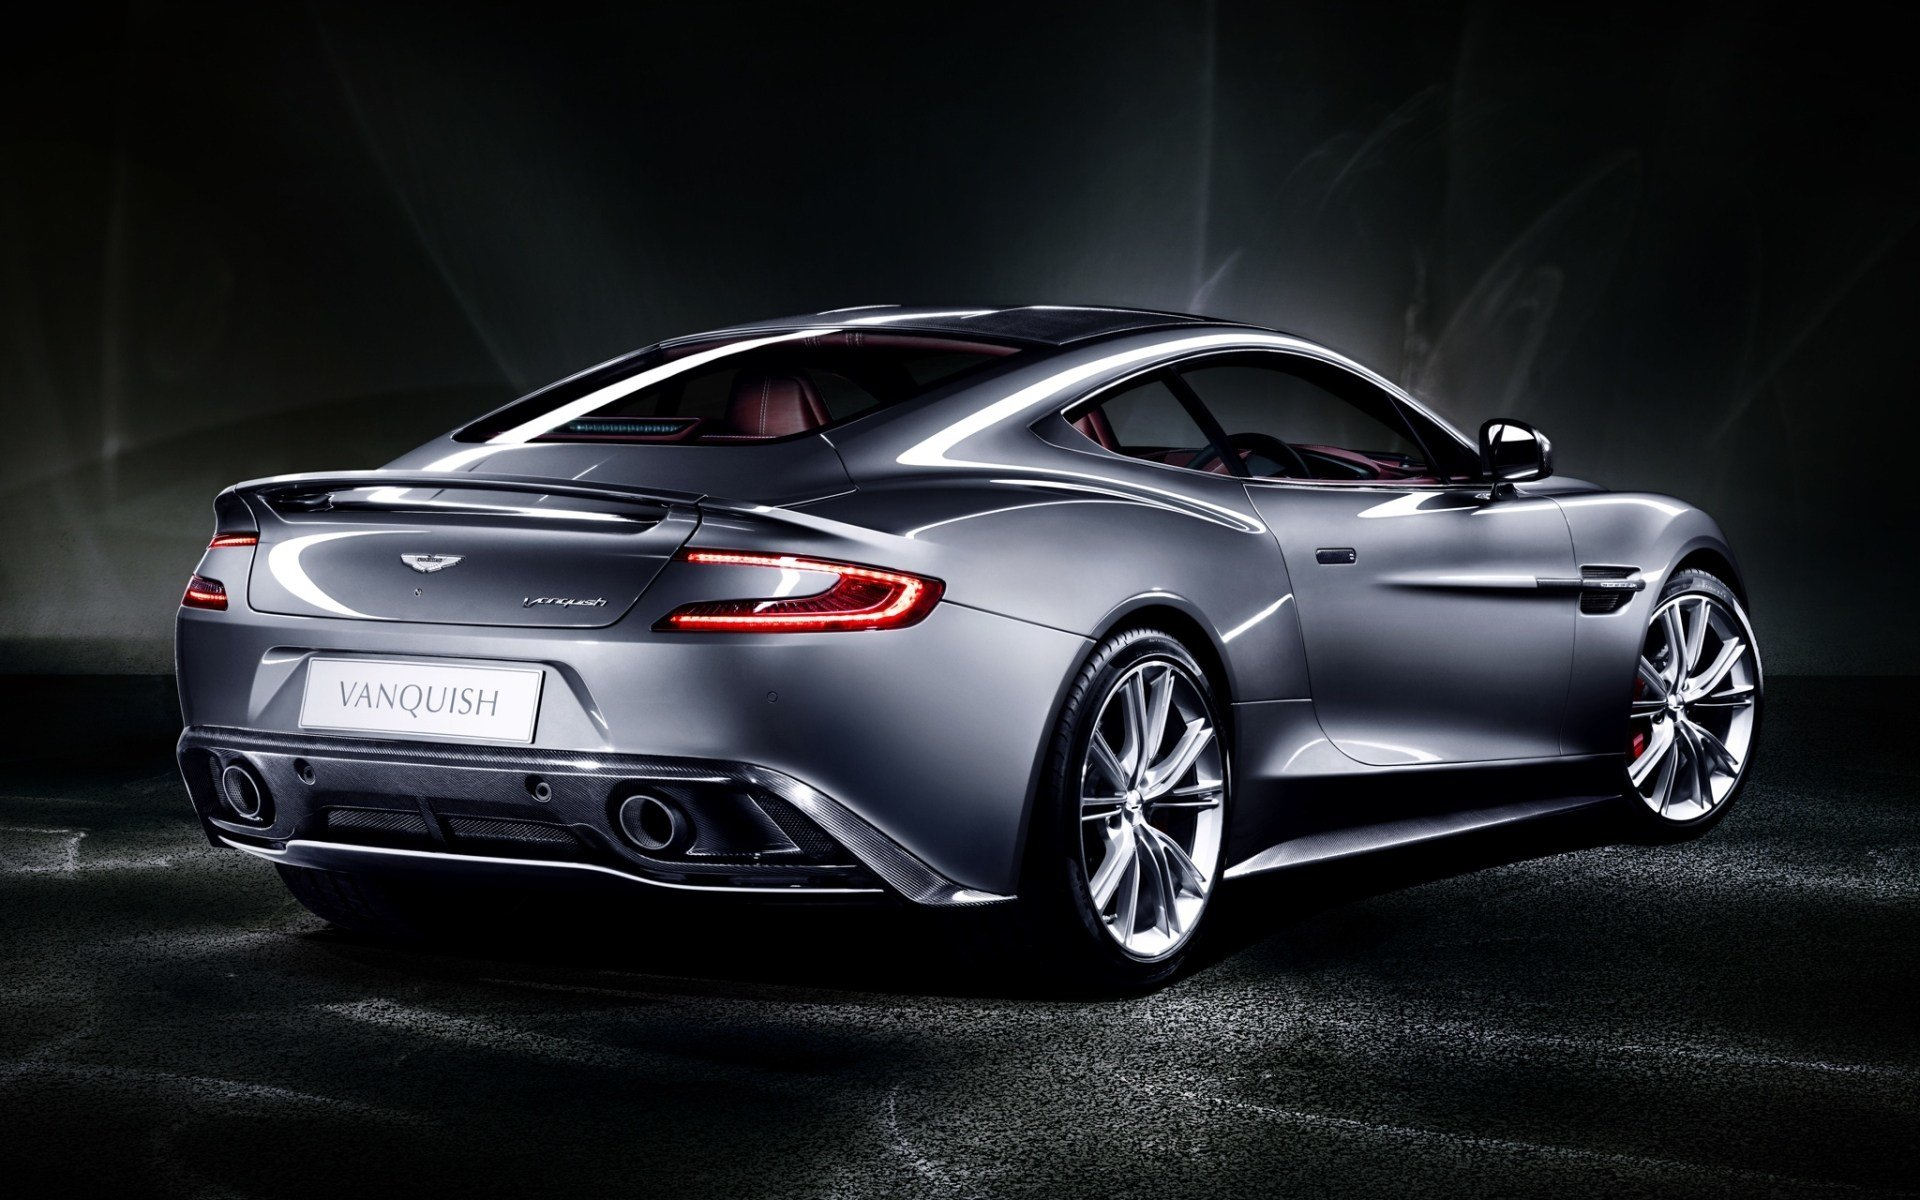 Latest Aston Martin Vanquish Wallpapers Pictures Images Free Download